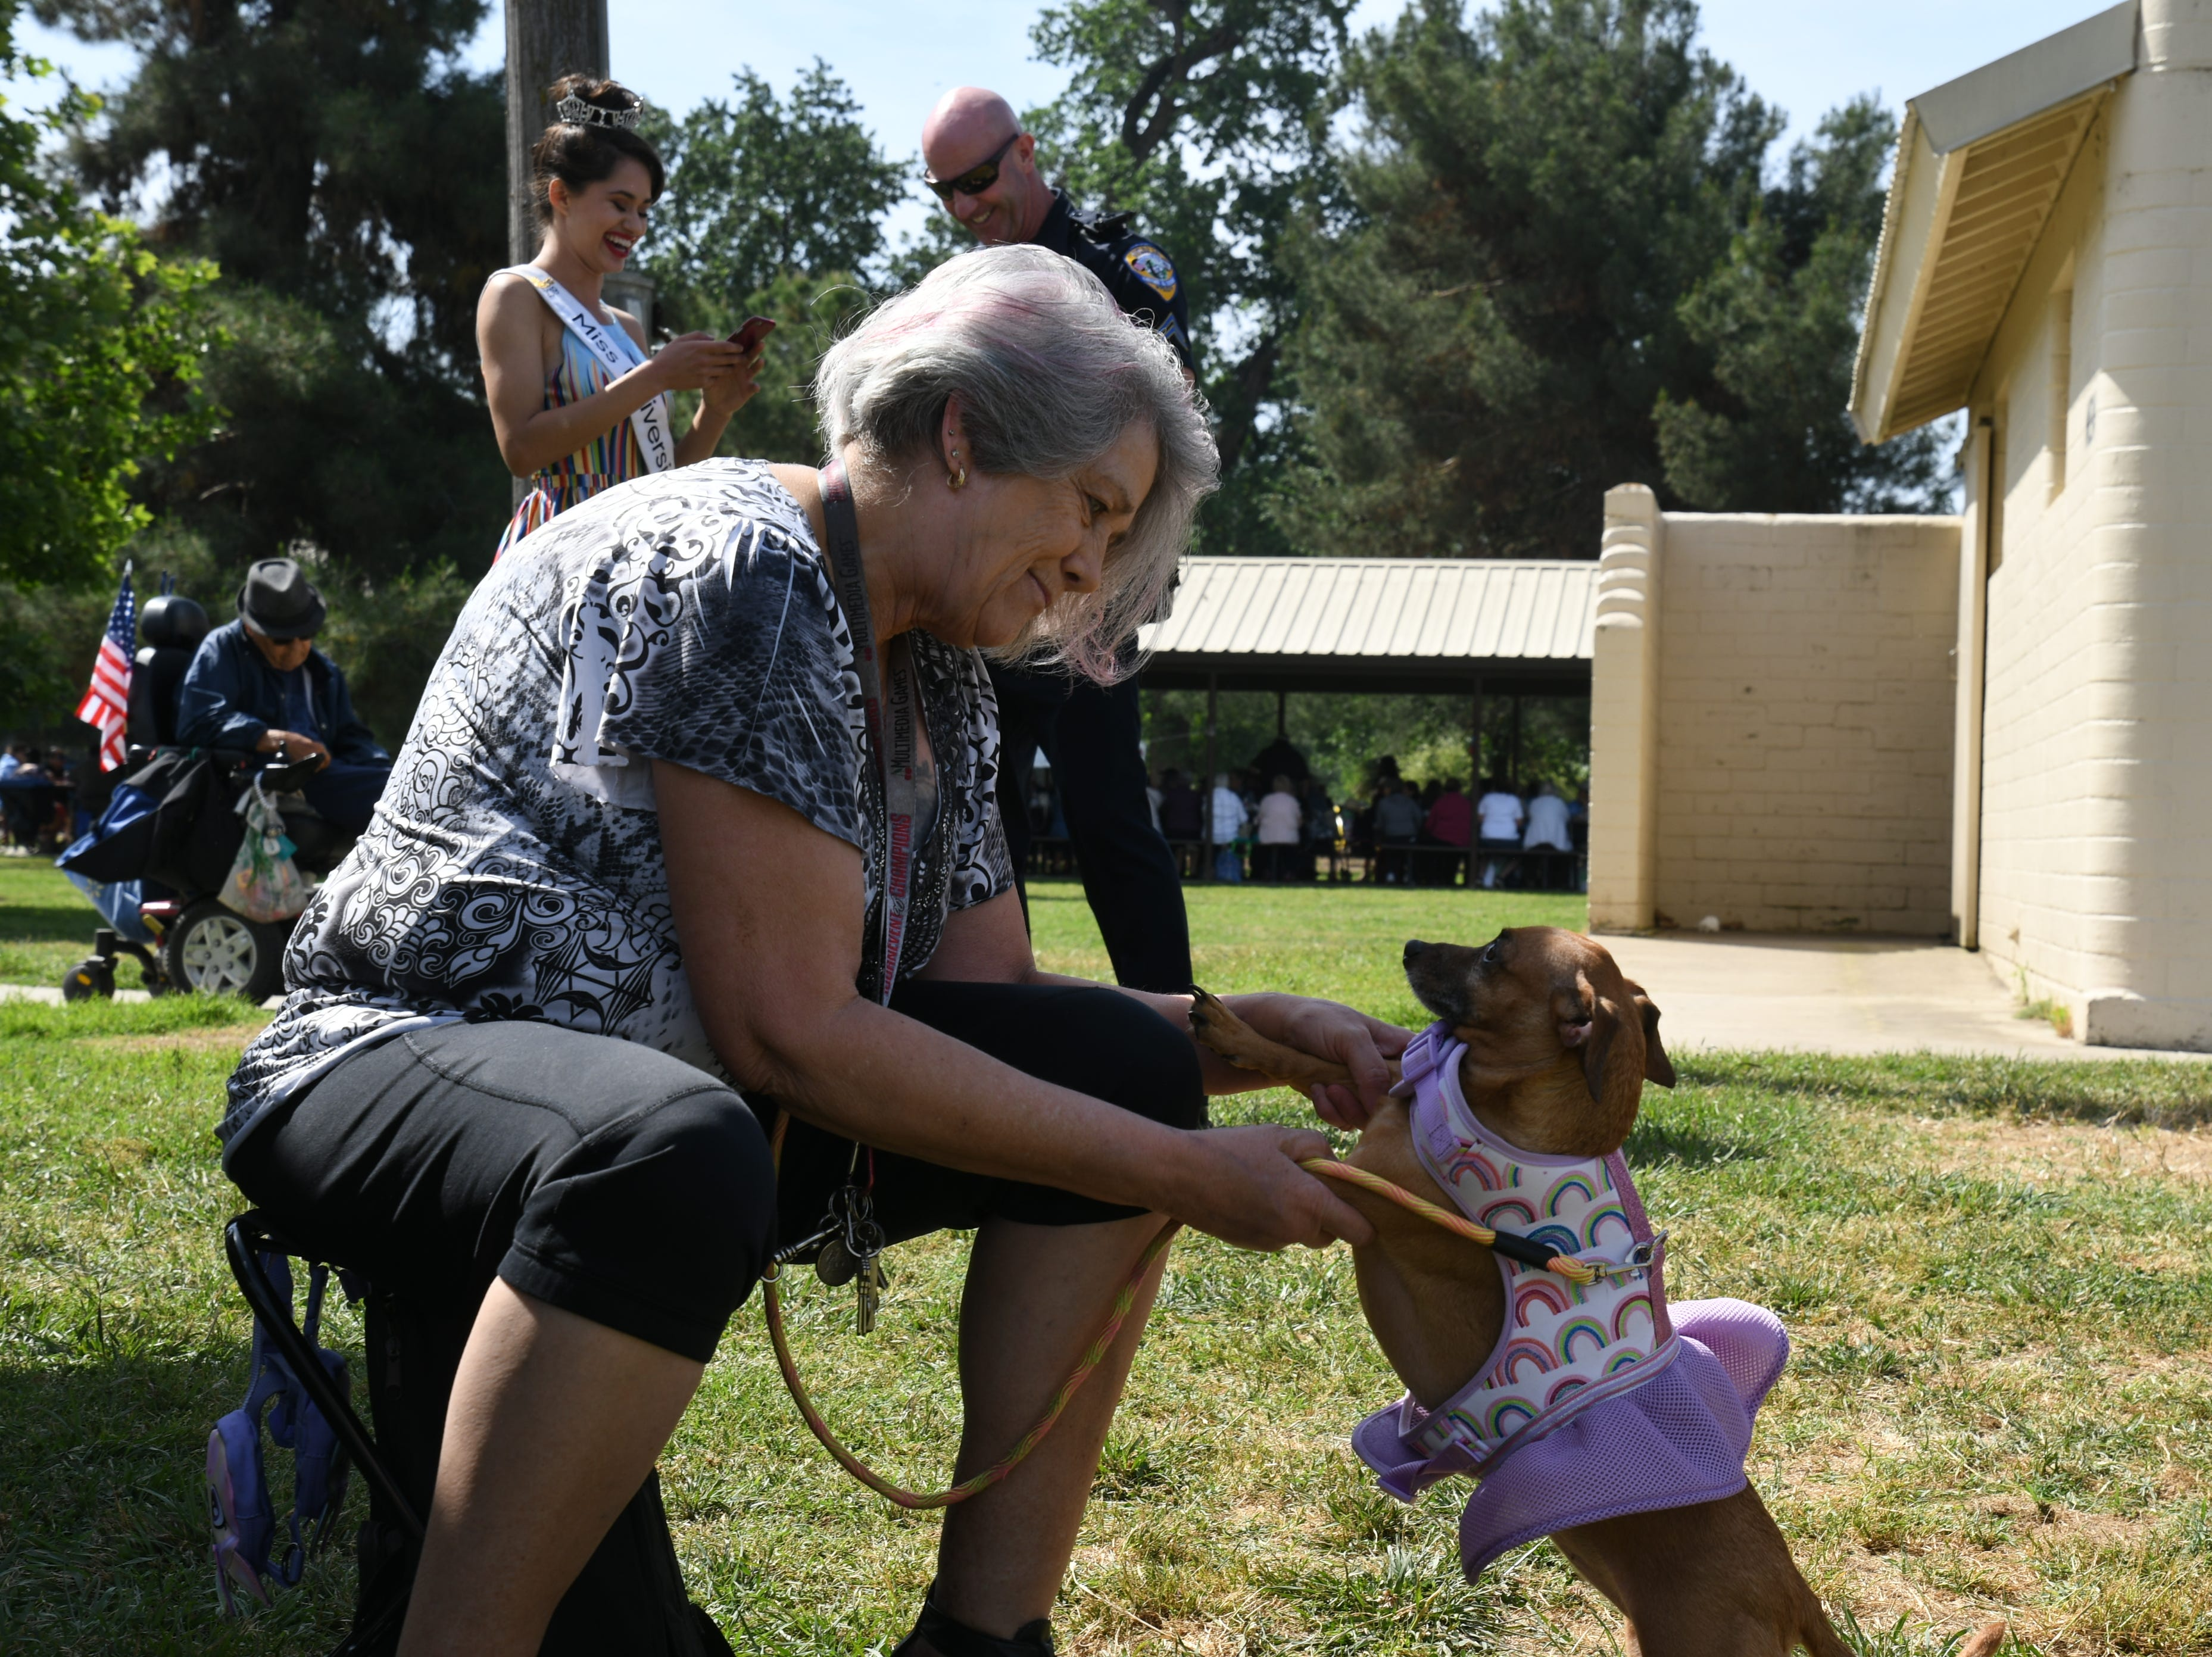 Senior Day in the Park celebrated its 50th birthday on Friday with 1,500 Tulare County seniors, an Elvis impersonator, free games and dancing. The yearly event is hosted by Community Services Employment Training  at Mooney Grove Park.